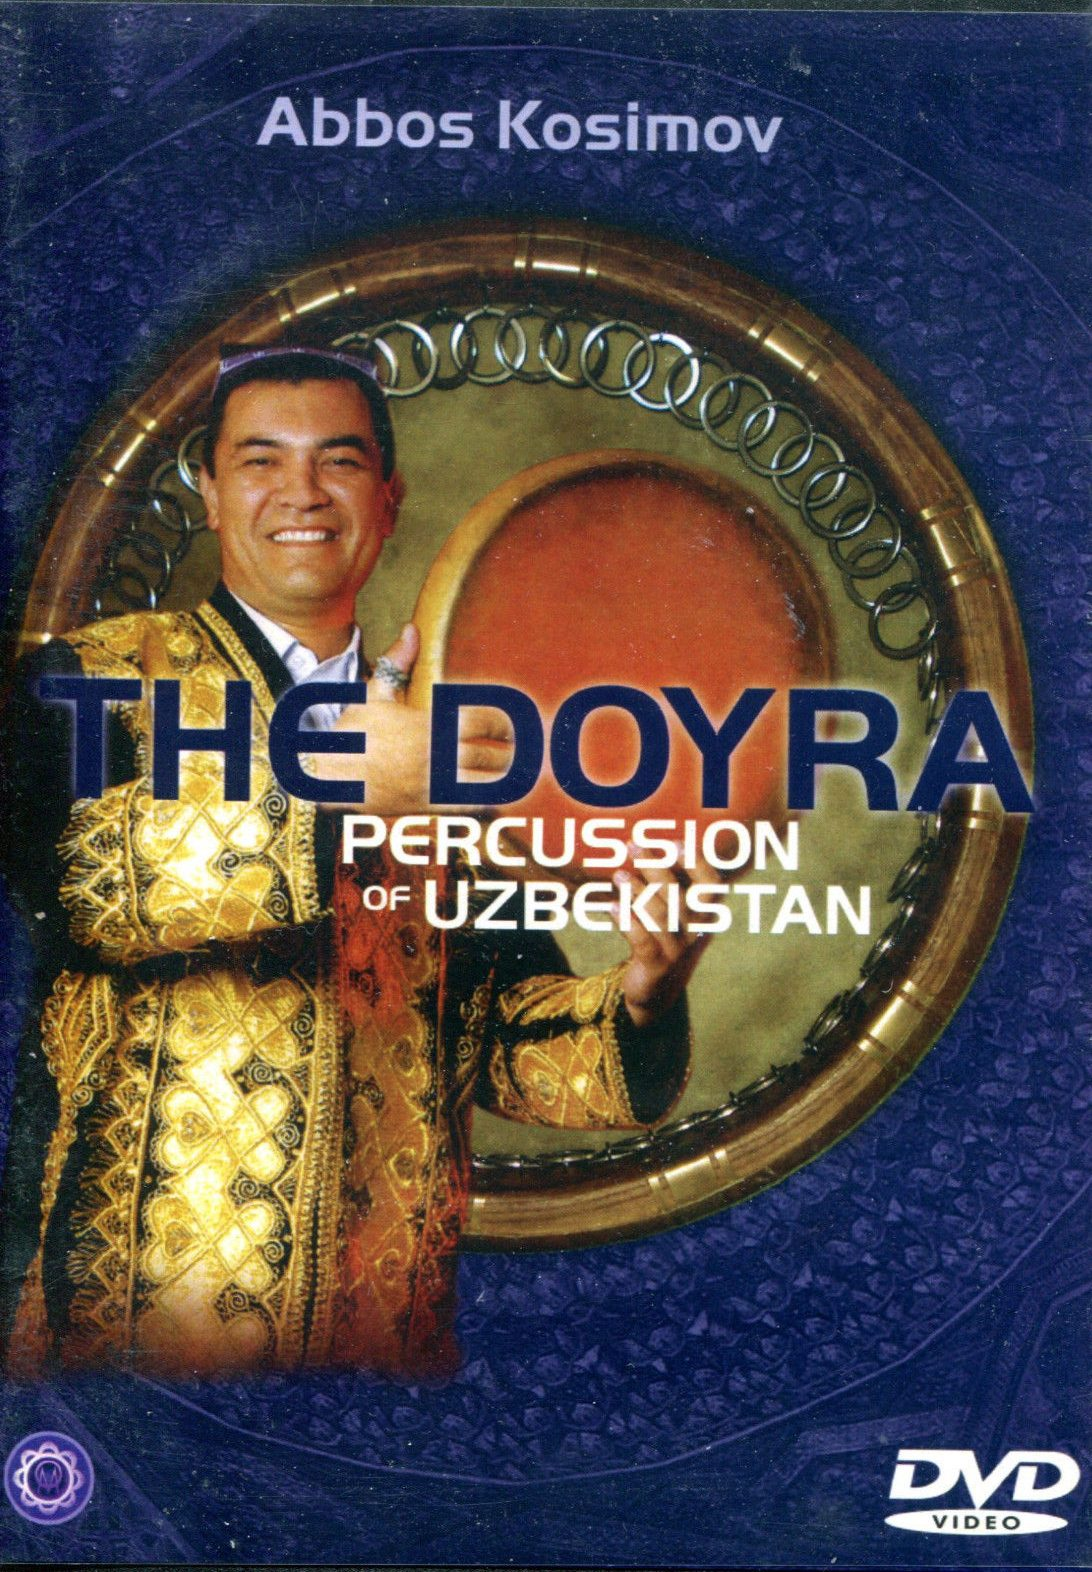 The Doyra: Percussion of Uzbekistan